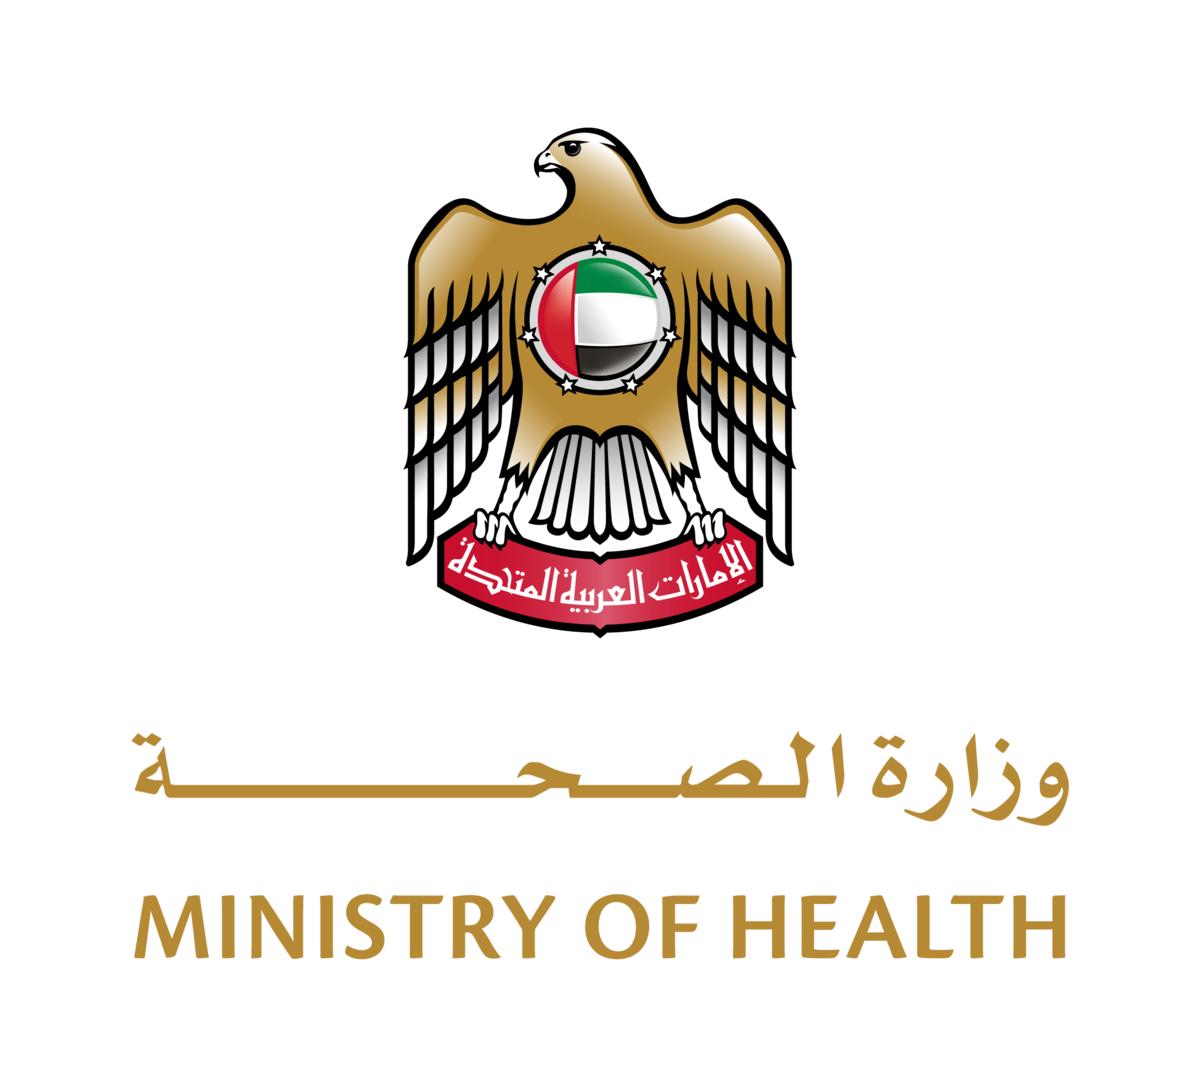 Ministry of Health (United Arab Emirates)